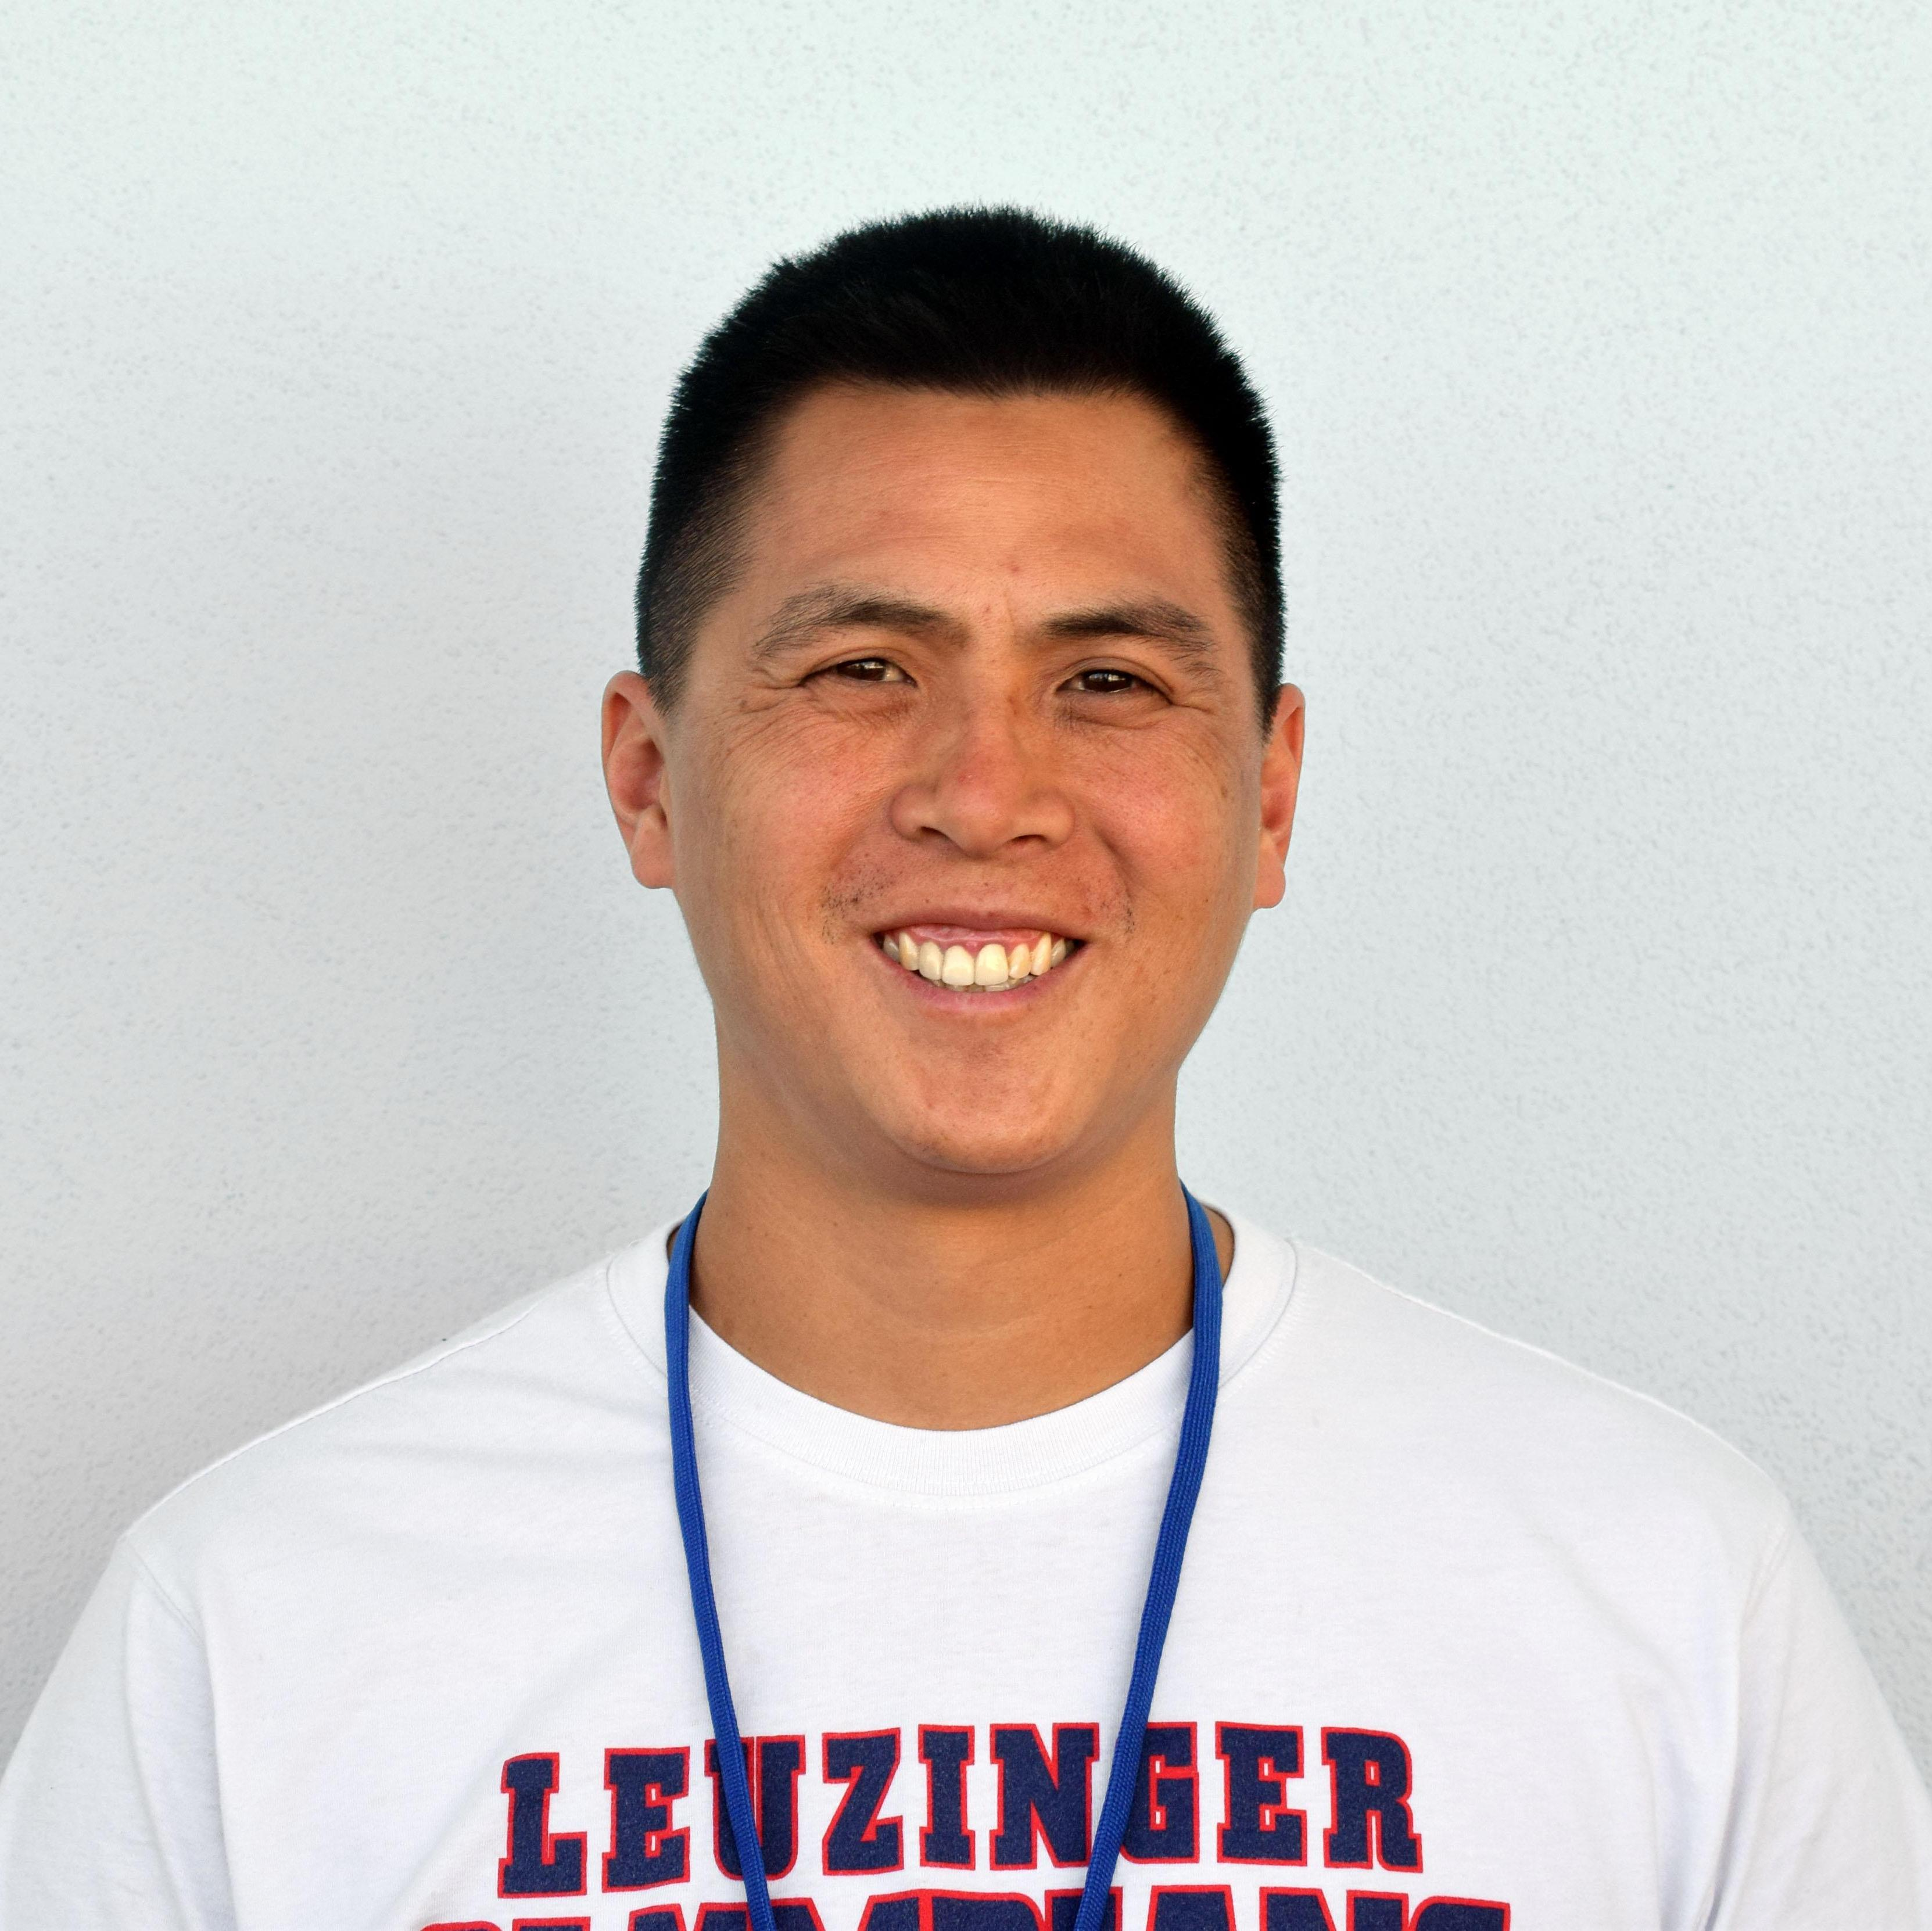 Mr. John Nguyen's Profile Photo